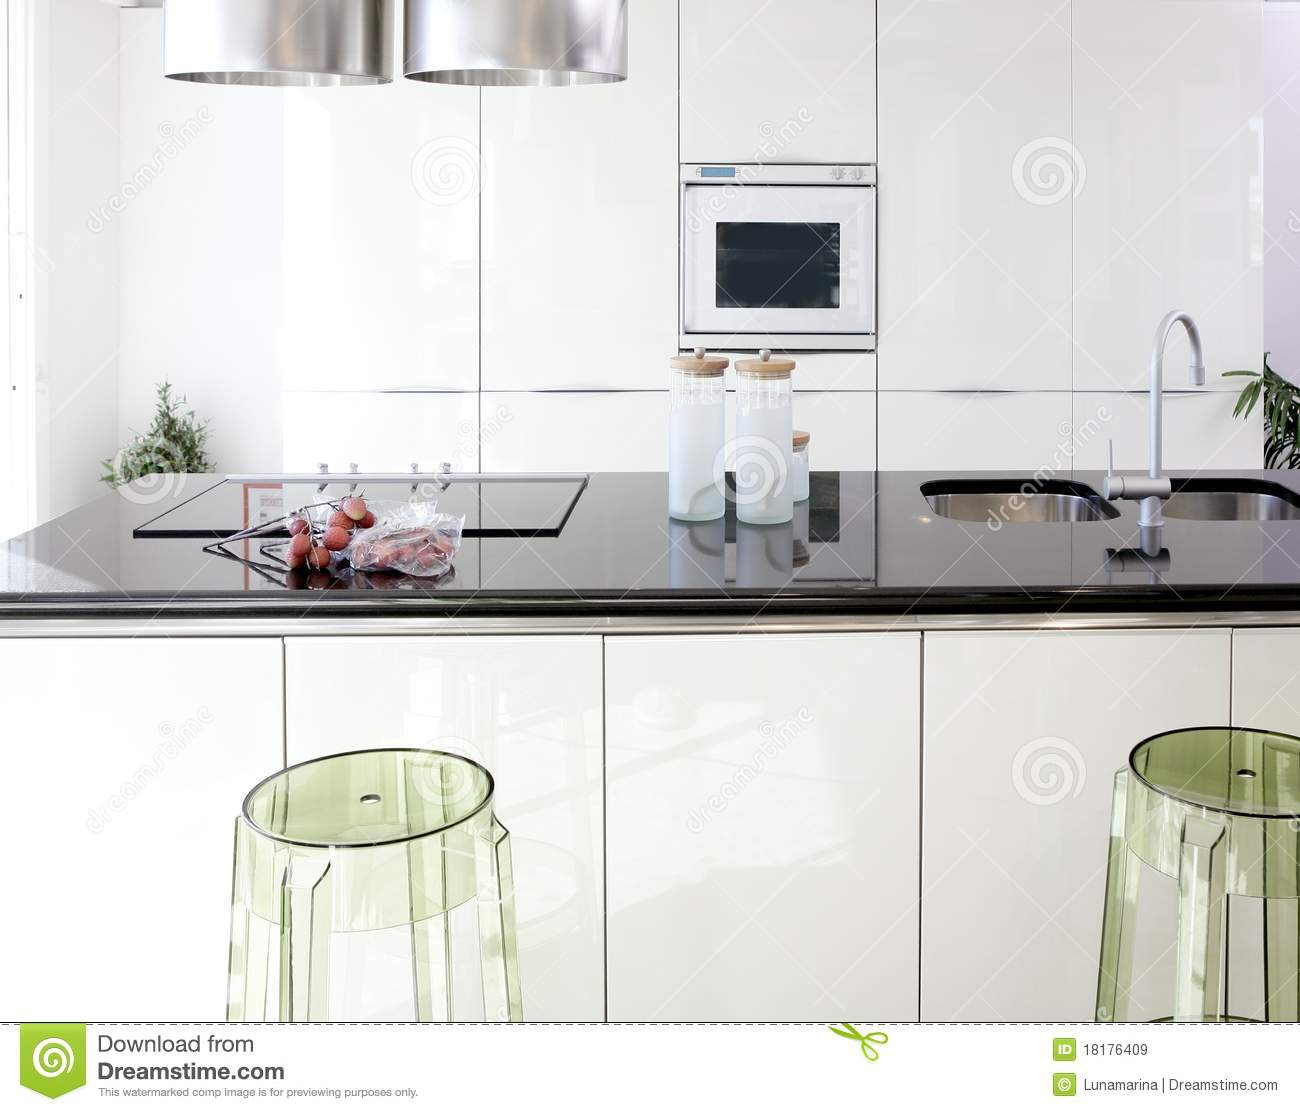 Modern white kitchen clean interior design royalty free stock images image 18176409 - Modern house interior design kitchen ...